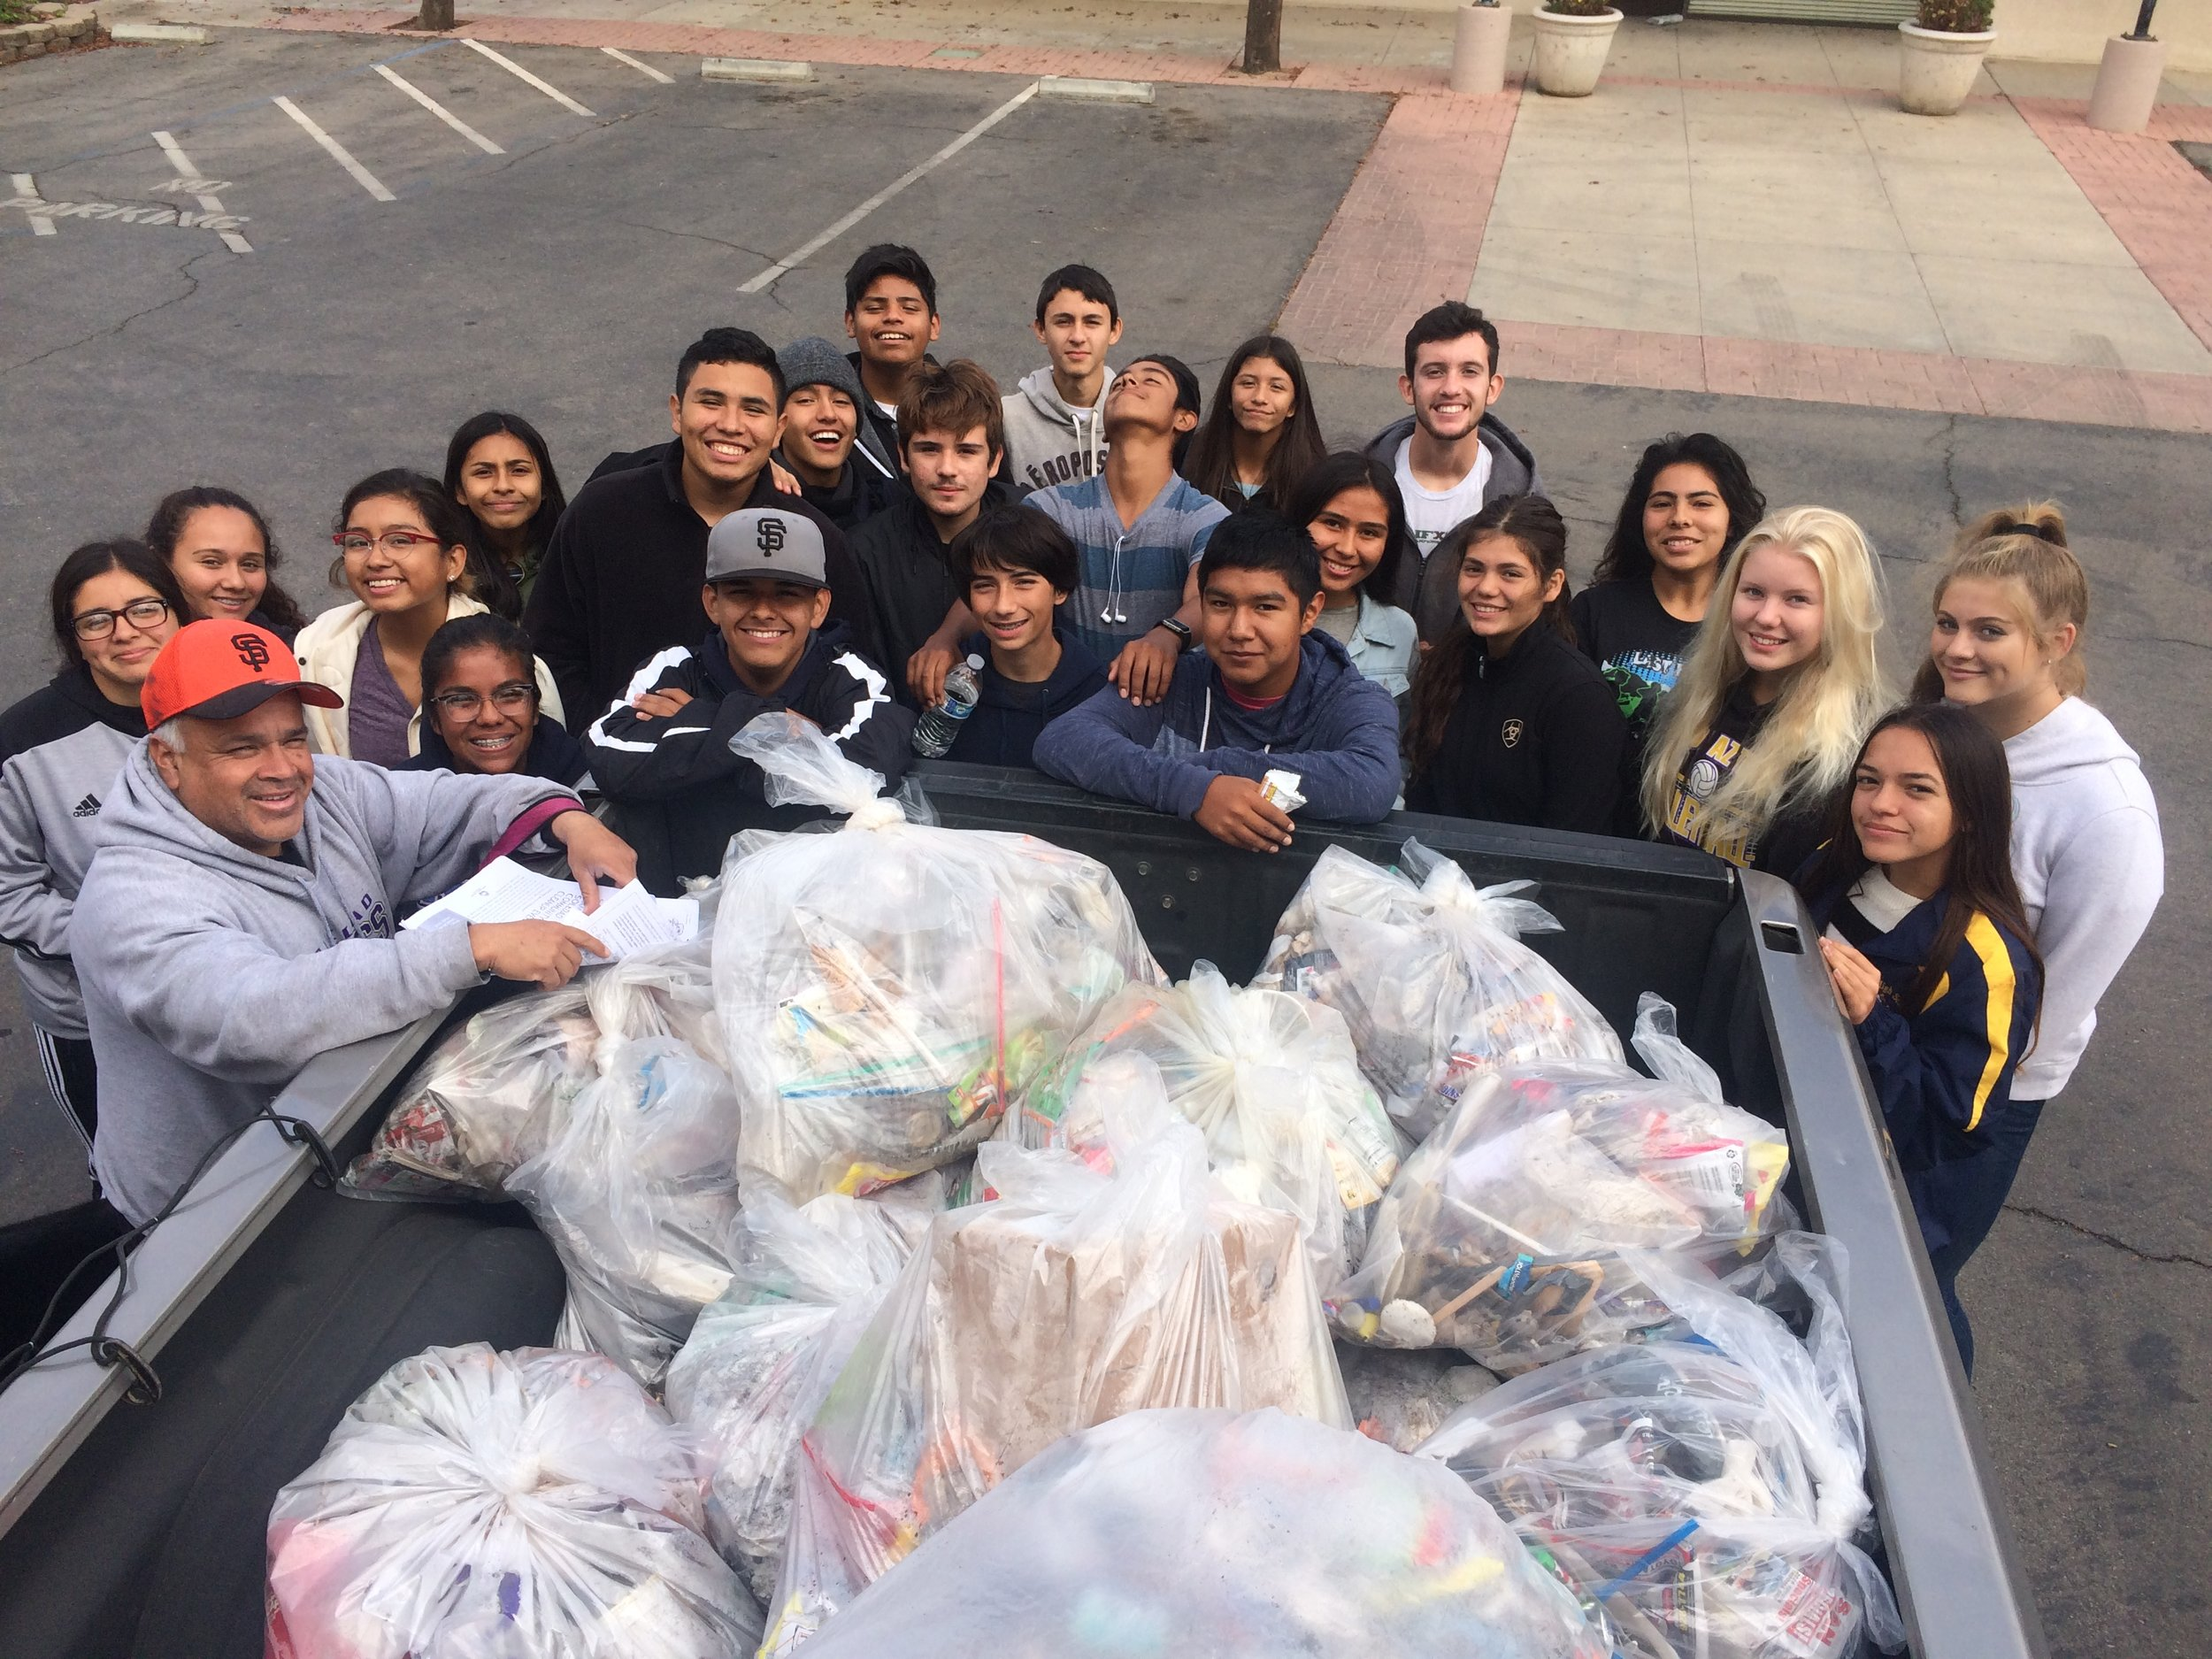 Soledad High School Cross Country team fall litter cleanup (2017)